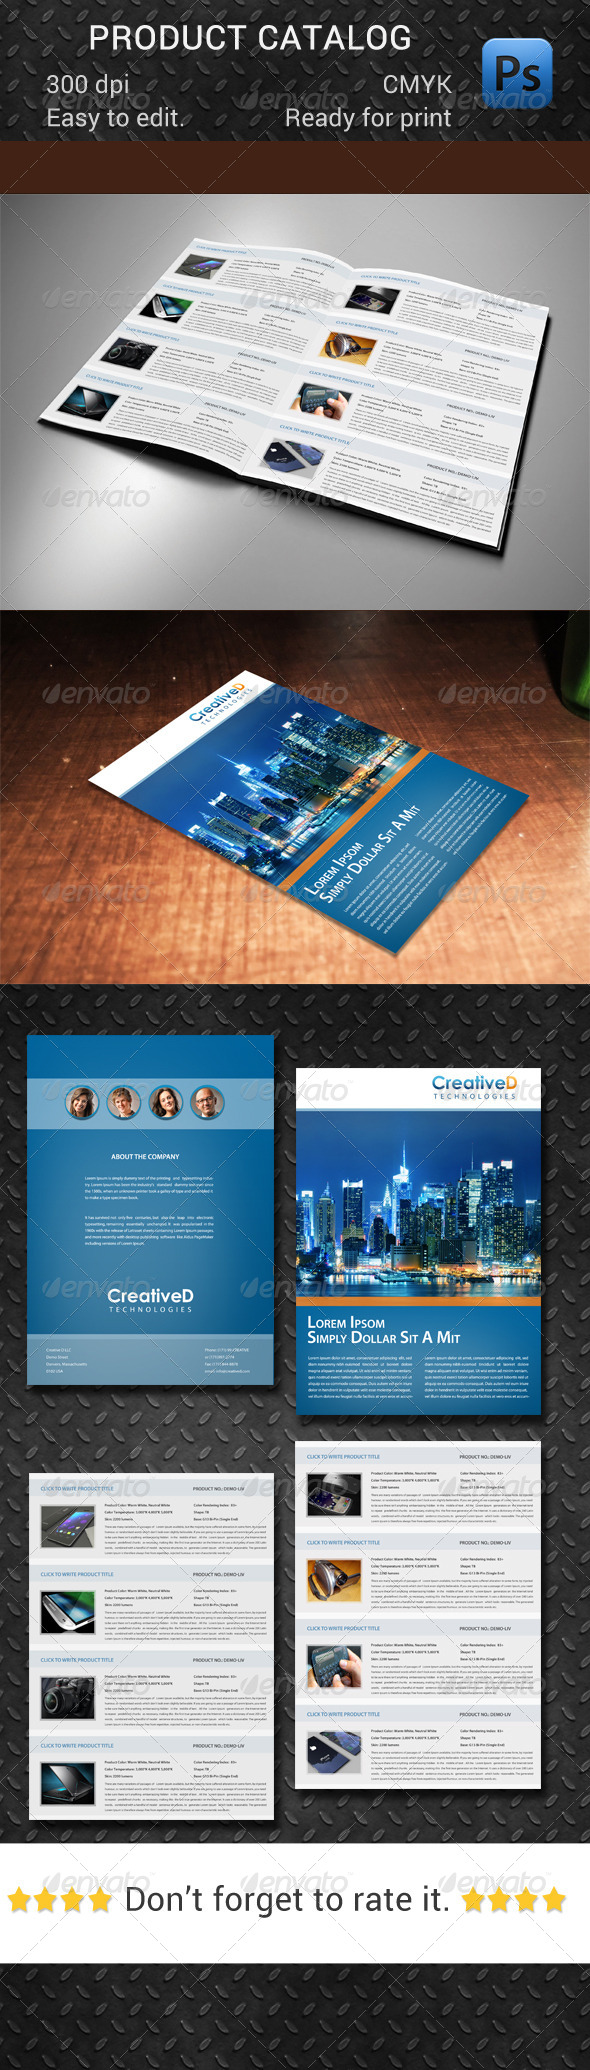 GraphicRiver Product Catalog 7762237